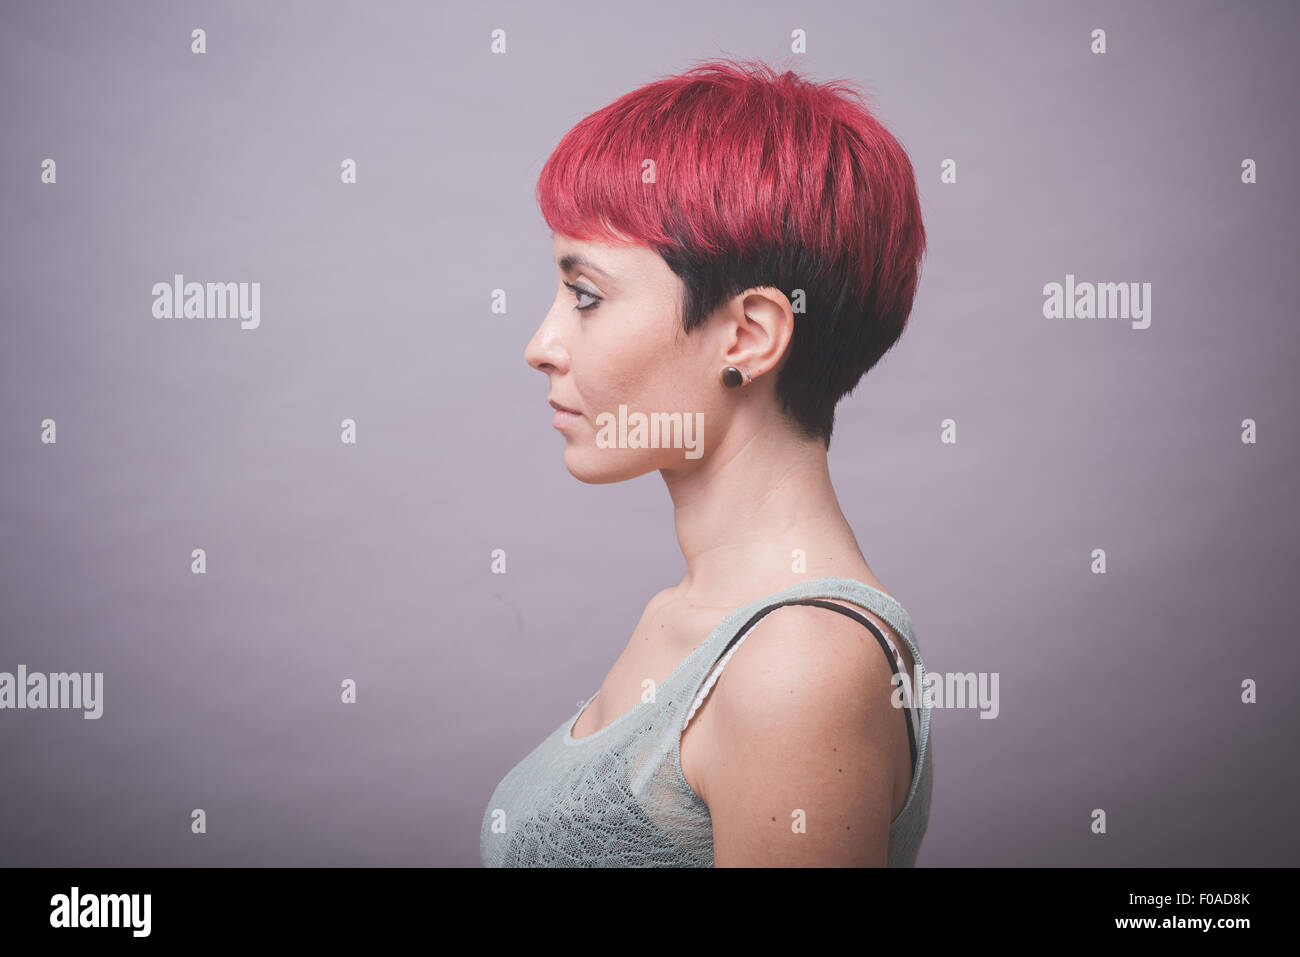 Profile studio portrait of young woman with short pink hair with hands on cheeks - Stock Image